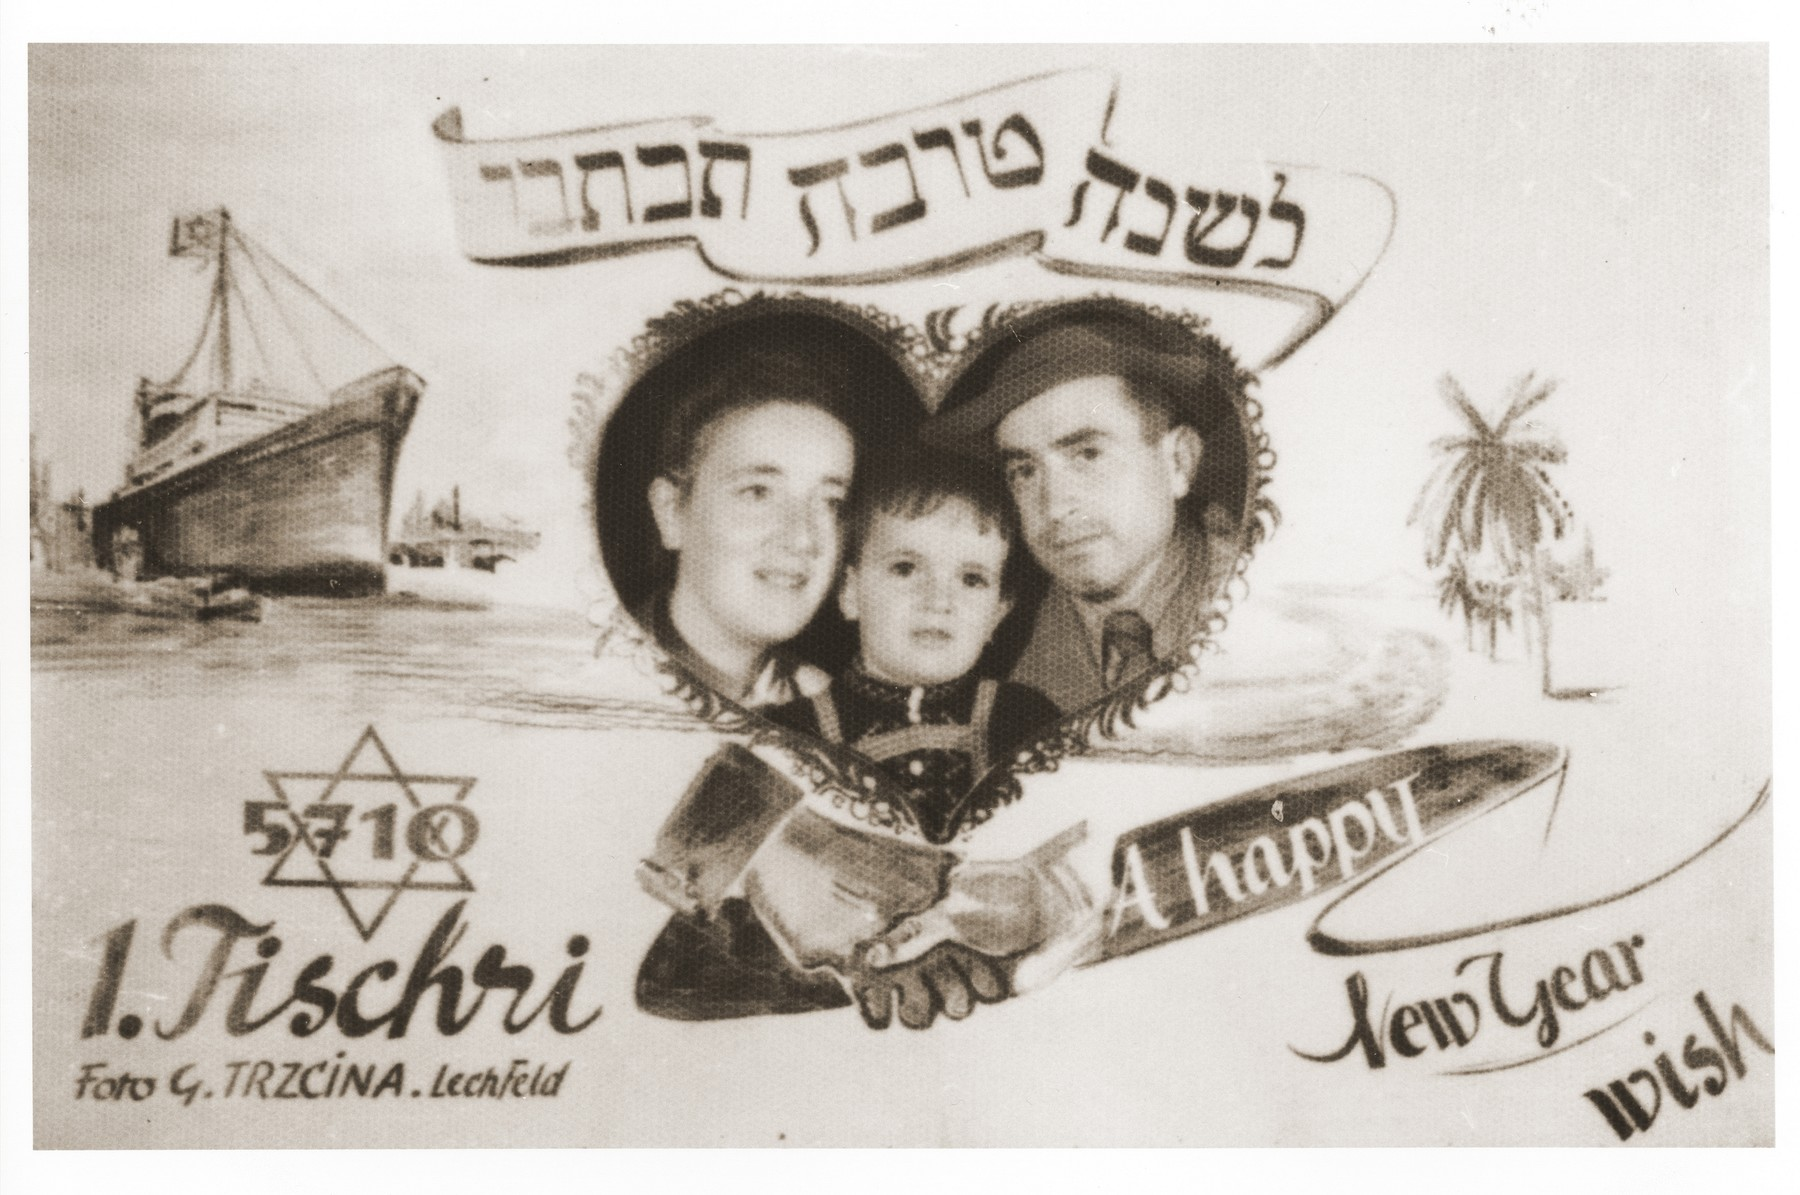 Jewish New Year's card with a photo of the Trzcina family, sent from the Lechfeld displaced persons camp.  Gerzon Trzcina was born in Krasnosielc, Poland in 1922.  He was the son of Dina Kassel and Benam Yitzhak, who was a businessman in the leather trade.  Gerzon had one older brother, Jacob, and two sisters, Faiga (b. 1918) and Perl (b. 1920).  When the war broke out, Gerzon was working as a photographer's assistant (among other jobs) in Warsaw.  Following the German invasion of September, 1939, Gerzon was slightly wounded by shrapnel.  Soon after, a drunken German soldier, forcibly cut Gerzon's hair.  When the soldier made him stoop down to pick up the cuttings, Gerzon grabbed the German's gun and ran away.  After a short time in hiding, Gerzon returned to his hometown, where he learned that eighty Jews had been murdered in the synagogue during the first week of the war in one of the first large-scale atrocities against Polish Jews.  Among those killed was Gerzon's eighty-two-year-old grandfather, Haskel Kassel.  Gerzon moved on to Makow Mazowiecki, where he was forced to clean the stables the Germans had set up in the town's synagogue.  In the late fall, Gerzon escaped with his family to Bialystok, where he worked in a tannery until the family was deported to the Soviet interior in June, 1940.  Along with a group of Polish and Jewish refugees, the Trzcinas were sent to the Kiltovo labor camp in northern Russia.  Harsh conditions and poor nutrition led to Gerzon's father's death in the camp.  The family remained in Kiltovo until the German invasion of the Soviet Union in June of 1941.  Soon after, the refugees were allowed to leave the camp, and the Trzcinas moved to nearby Syktyvkar (capital of the Komi republic), where Gerzon worked in a construction company and later in a tannery.  In Syktyvkar, Gerzon was reunited with Gittel Blankitner, a Jewish refugee from Mlawa, whom he had met earlier in his travels in the Soviet Union.  (Gittel's father perished in Aushwitz, and her mother and siblings were killed in Treblinka.) In November, 1944, Gerzon and Gittel were married. The couple left the Soviet Union with their new baby in 1946.  Returning for a brief time to Poland, the family soon joined the wave of survivors streaming toward the Western zones of occupation.  After their arrival in Germany, the Trzcinas stayed in several DP camps including Vilseck, Wurzburg and Lechfeld, where Gerzon worked as an UNRRA photographer.  In March 1951, the family immigrated to the United States.